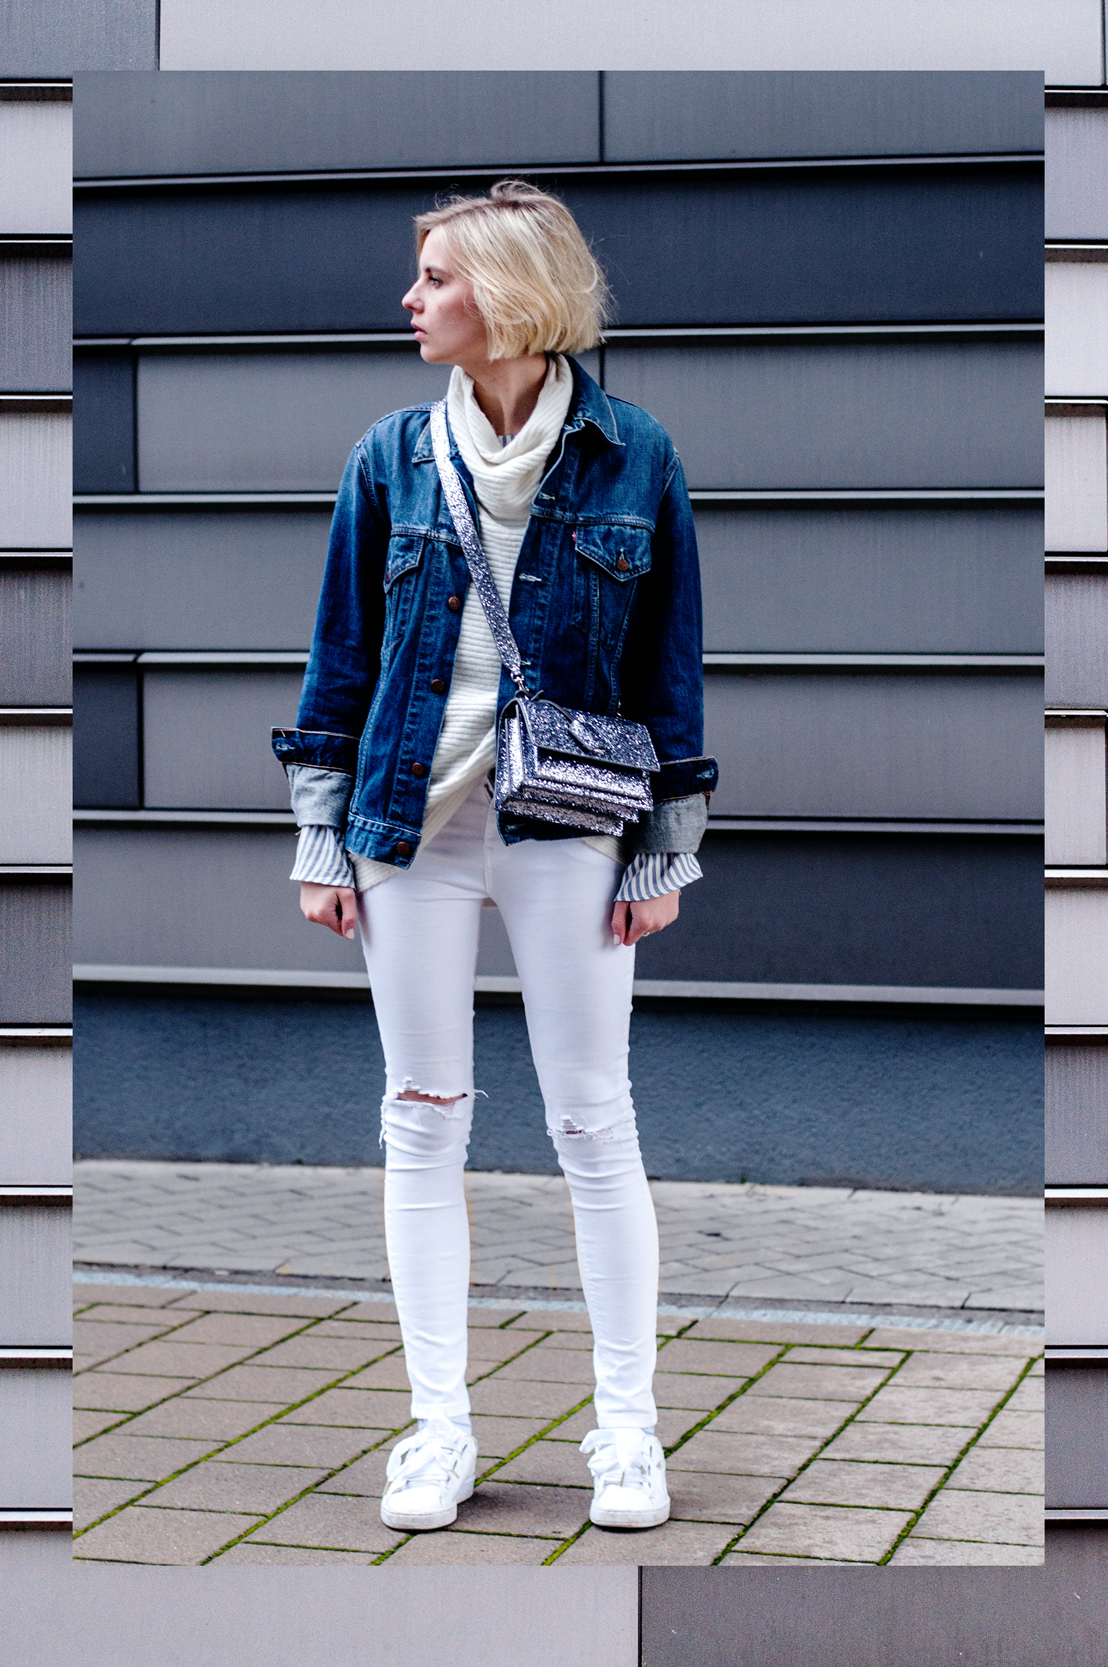 OUTFIT | Jeansjacke im Winter